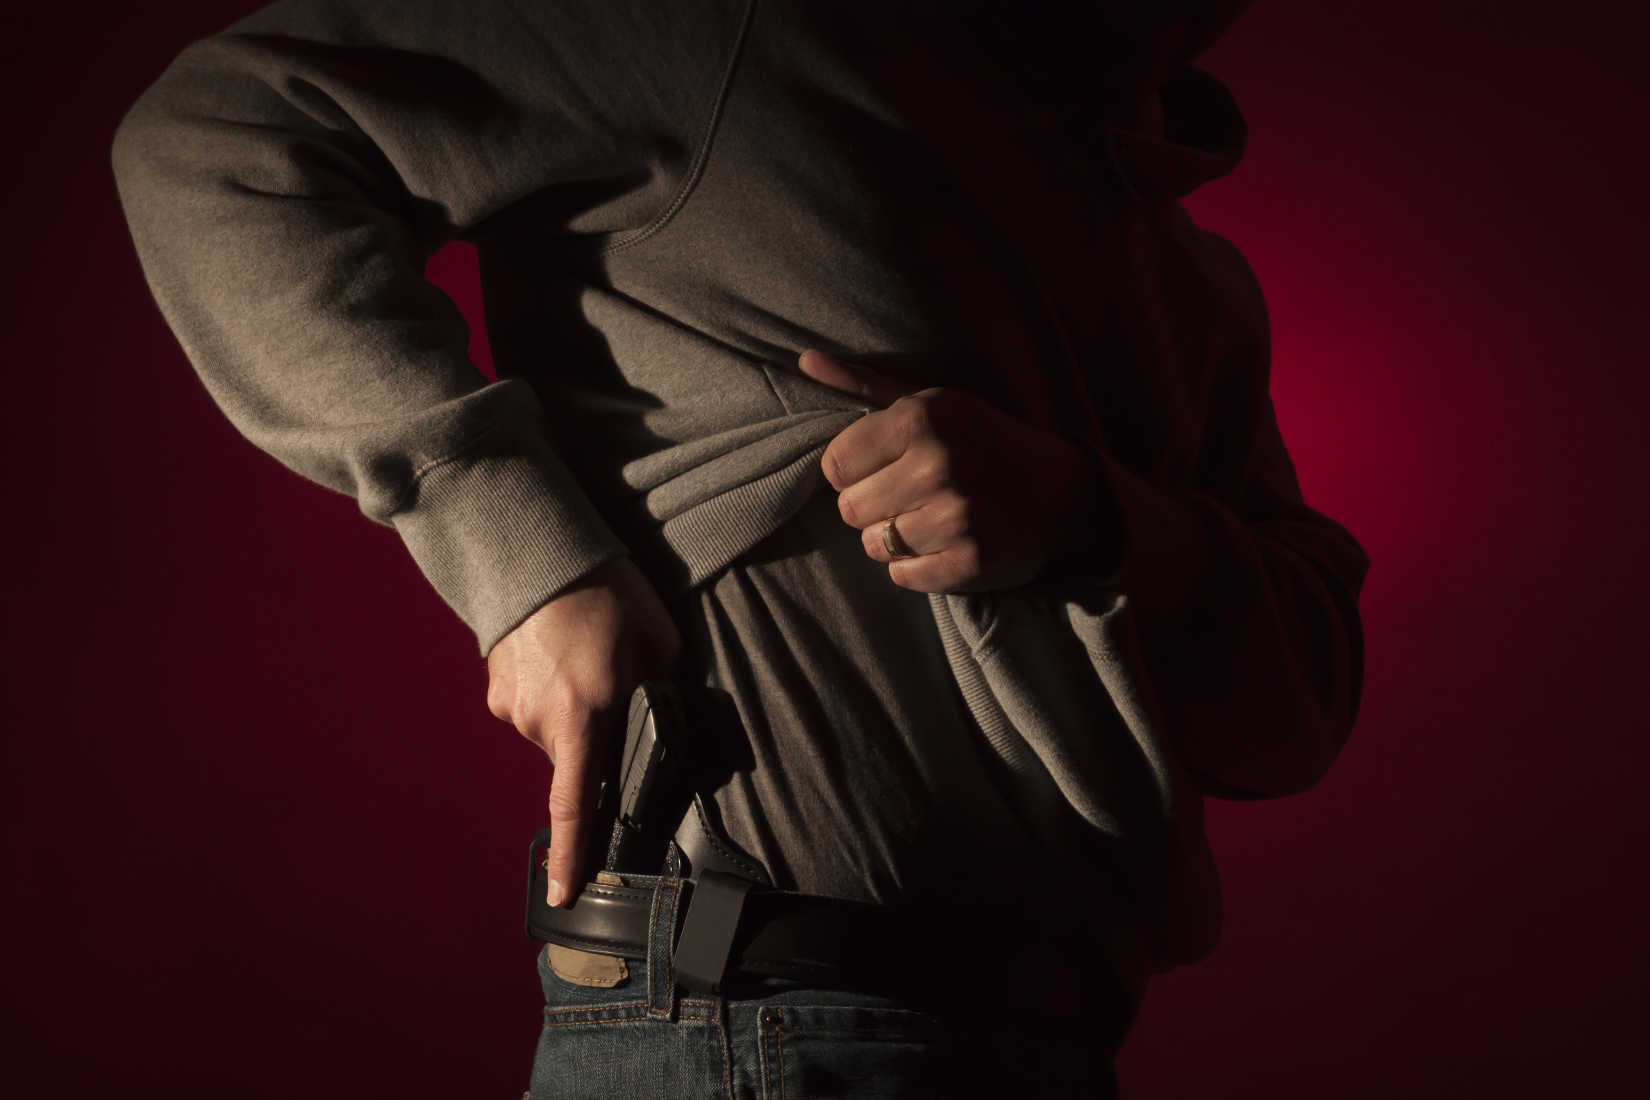 Report: More Americans than Ever Have Concealed Carry Permits